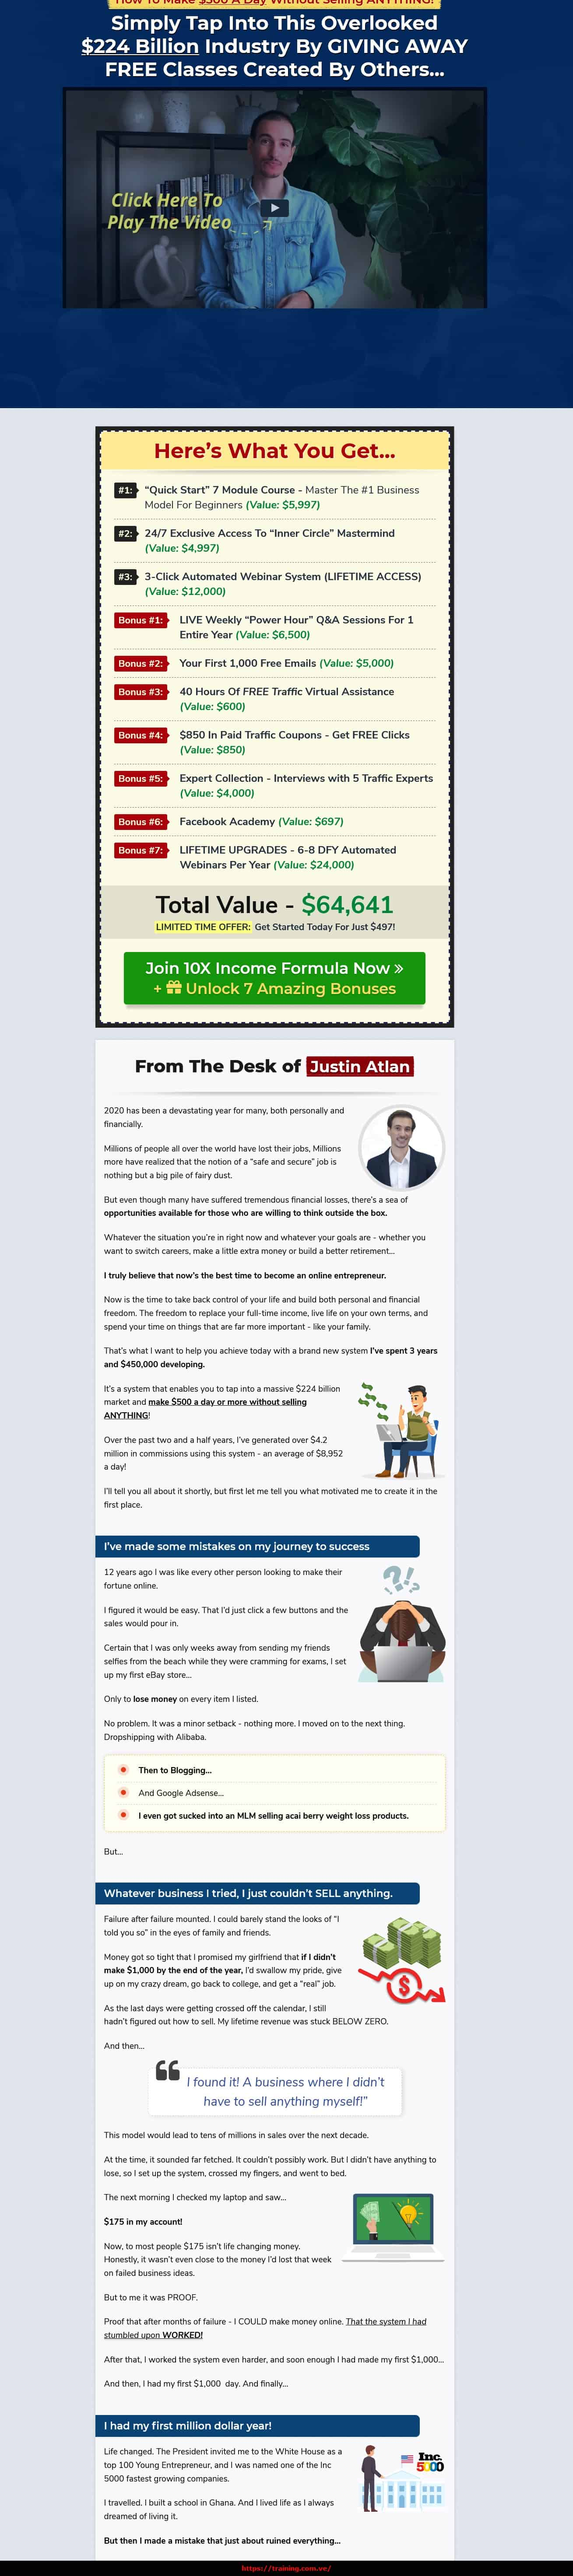 10X Income Formula by Justin Atlan sales page